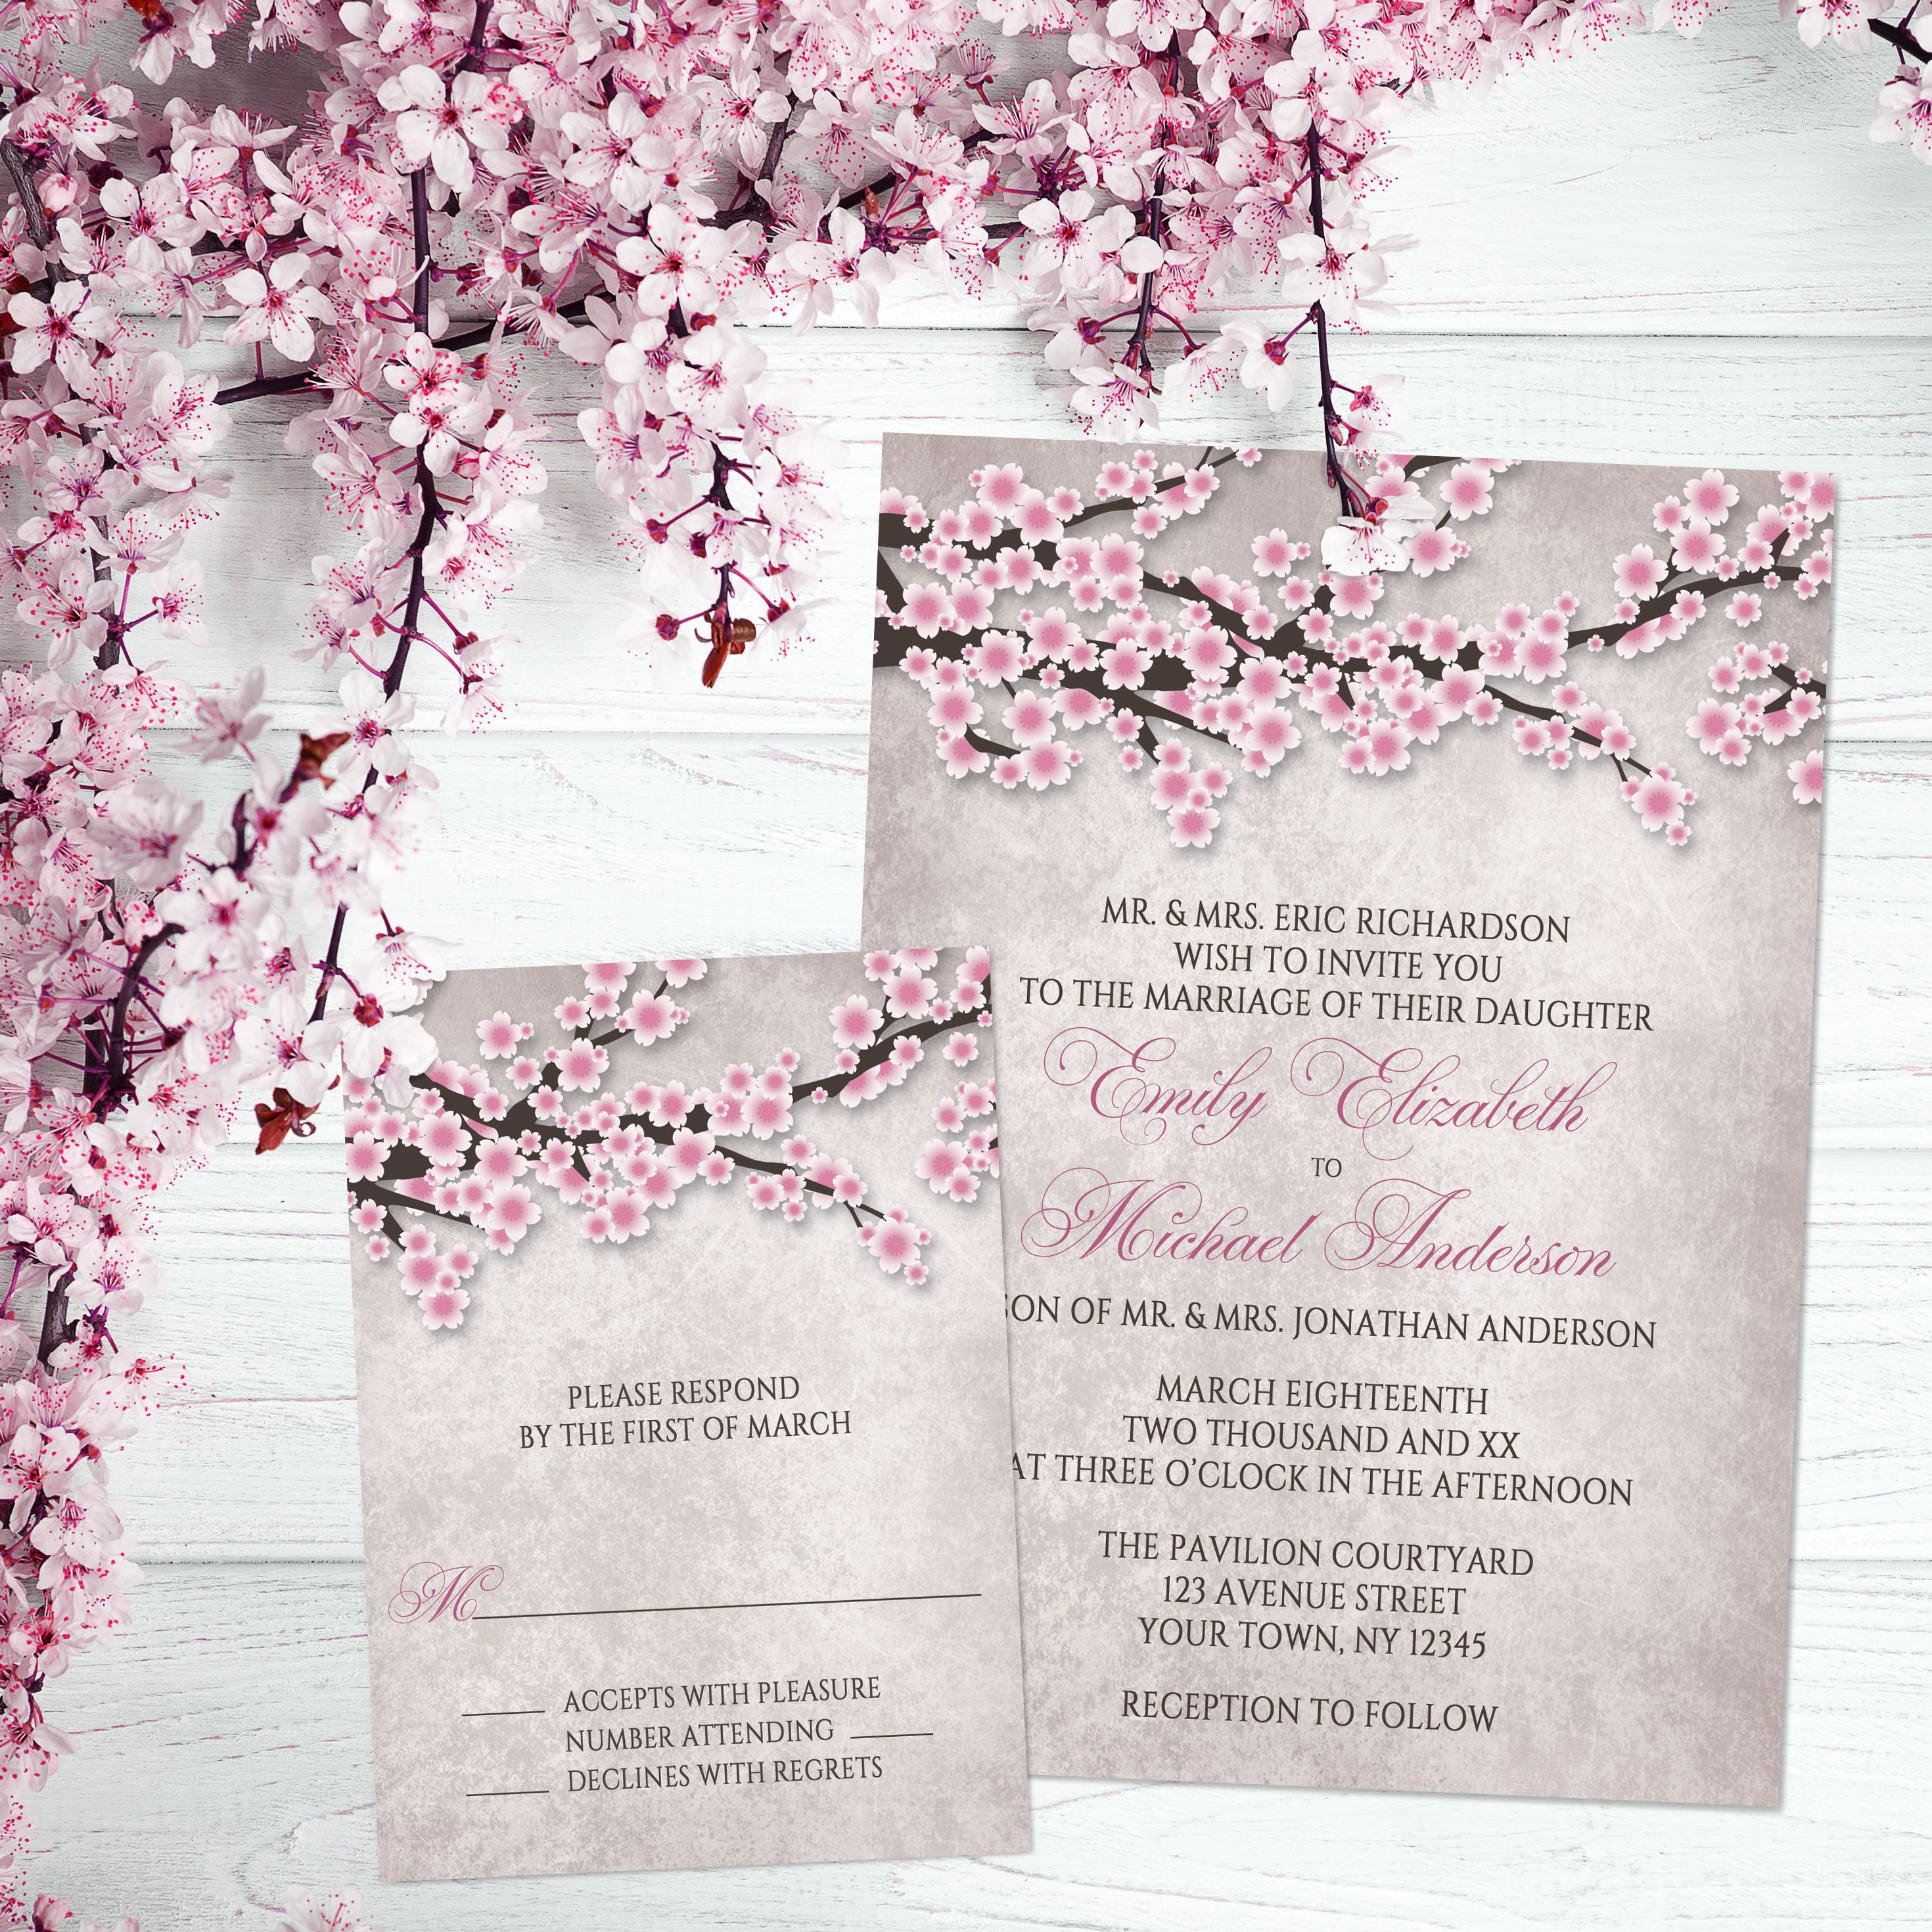 Start Your Spring Wedding Ping Now With This Rustic Abstract Cherry Blossom Invitation Set